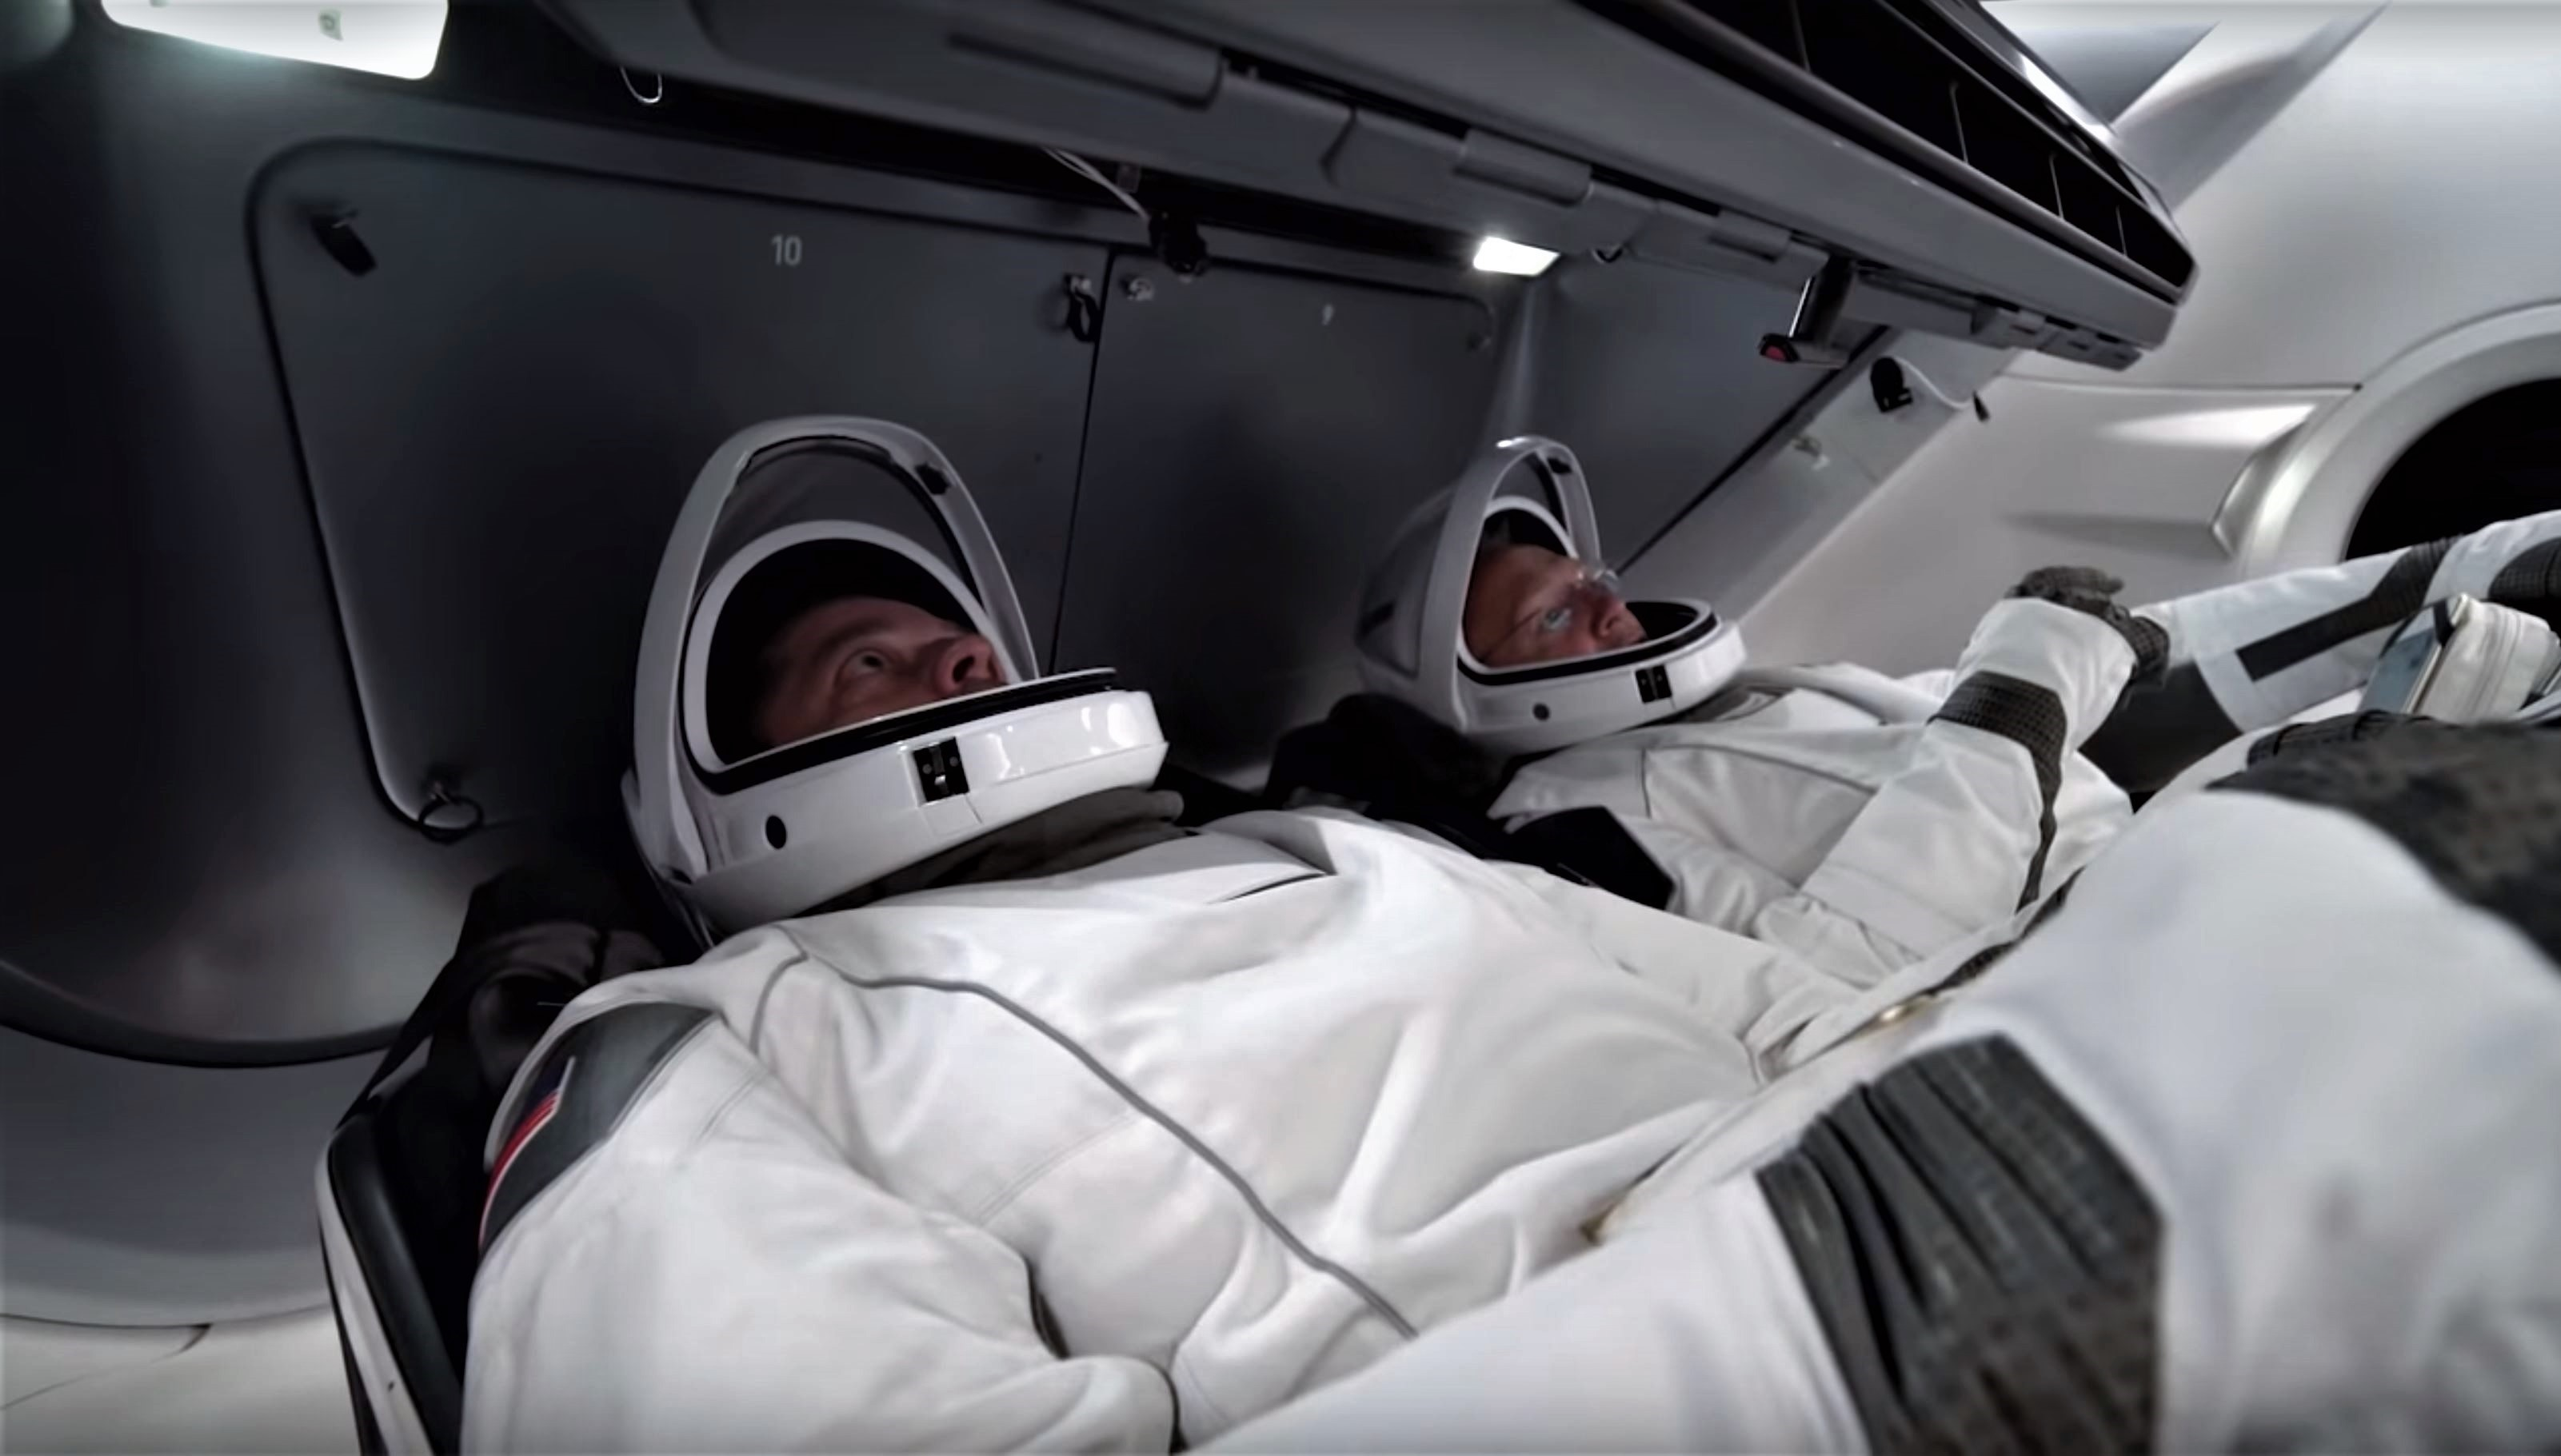 SpaceX's first Crew Dragon NASA astronauts suit up for spacesuit-focused launch rehearsal